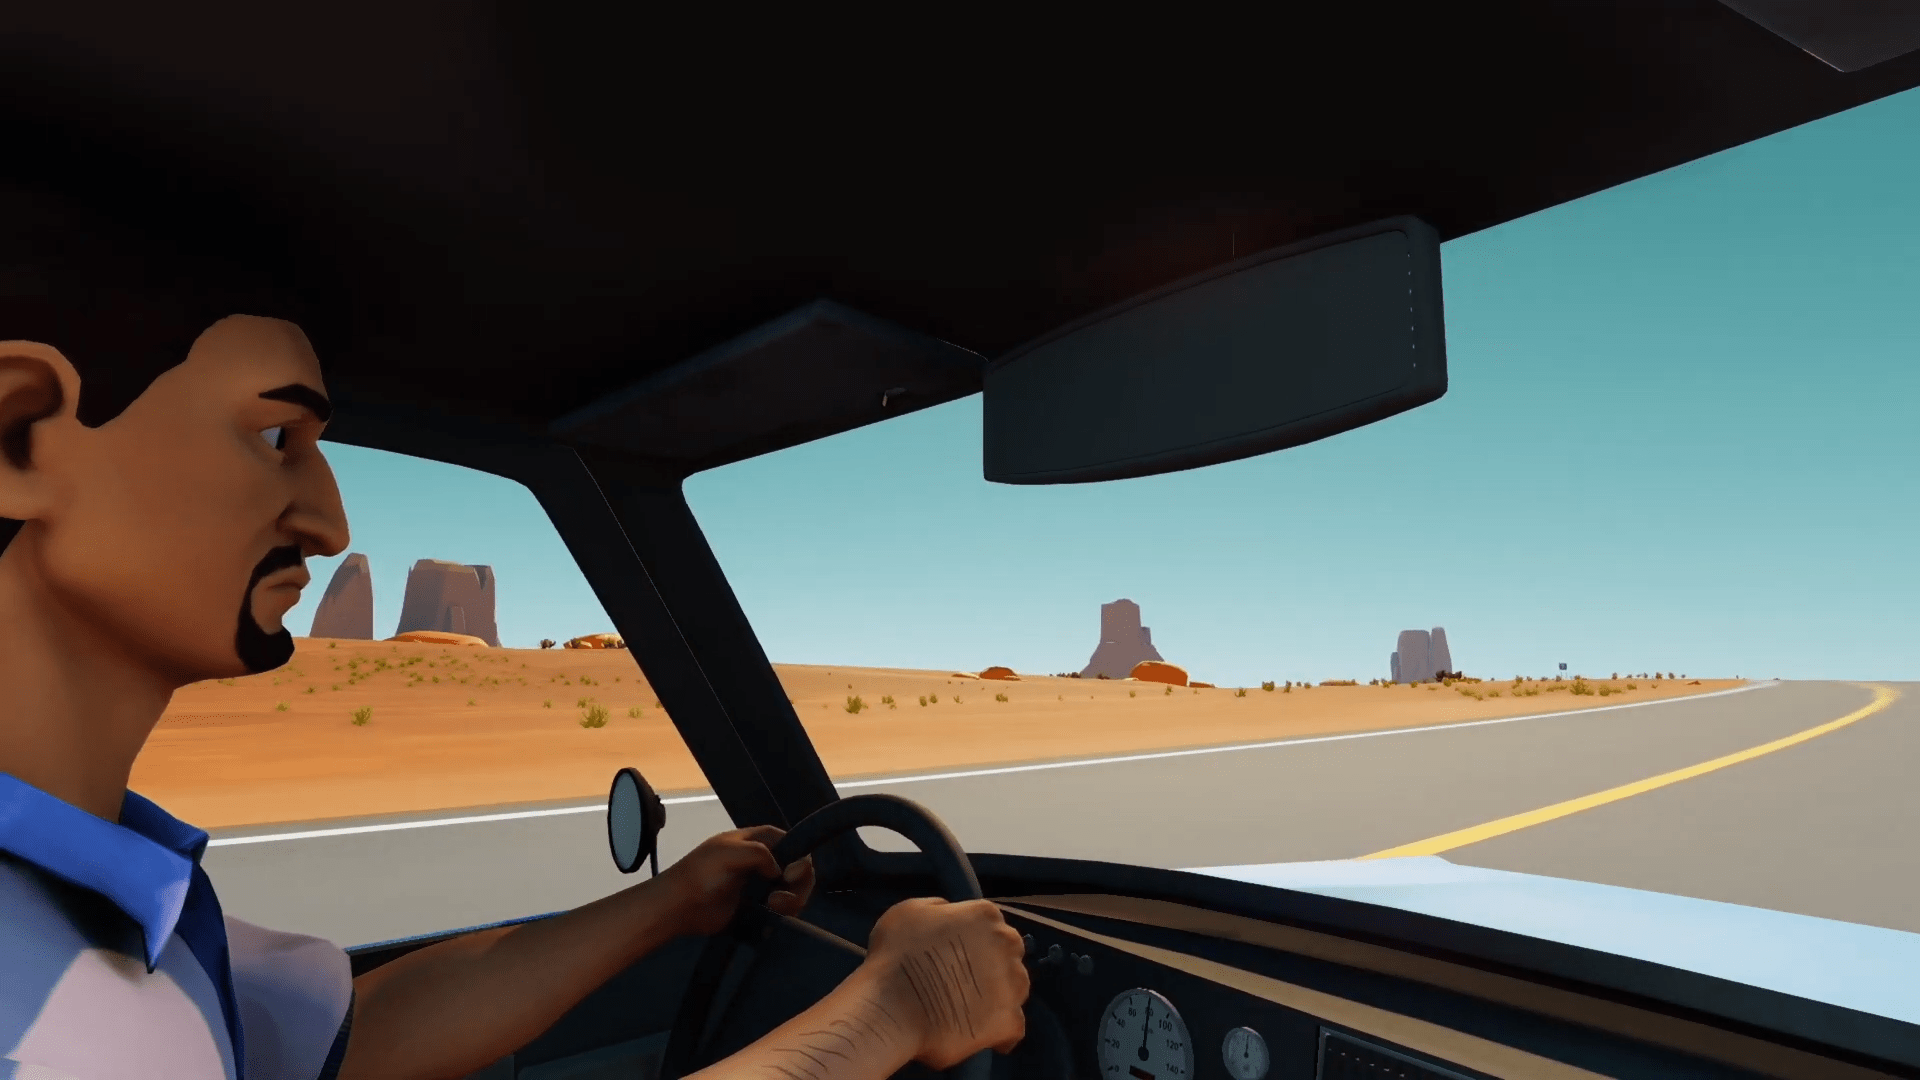 'Hitchhiker – A Mystery Game' Revealed At EGX Berlin, Prominently Features Both Hitchhiking And Mystery